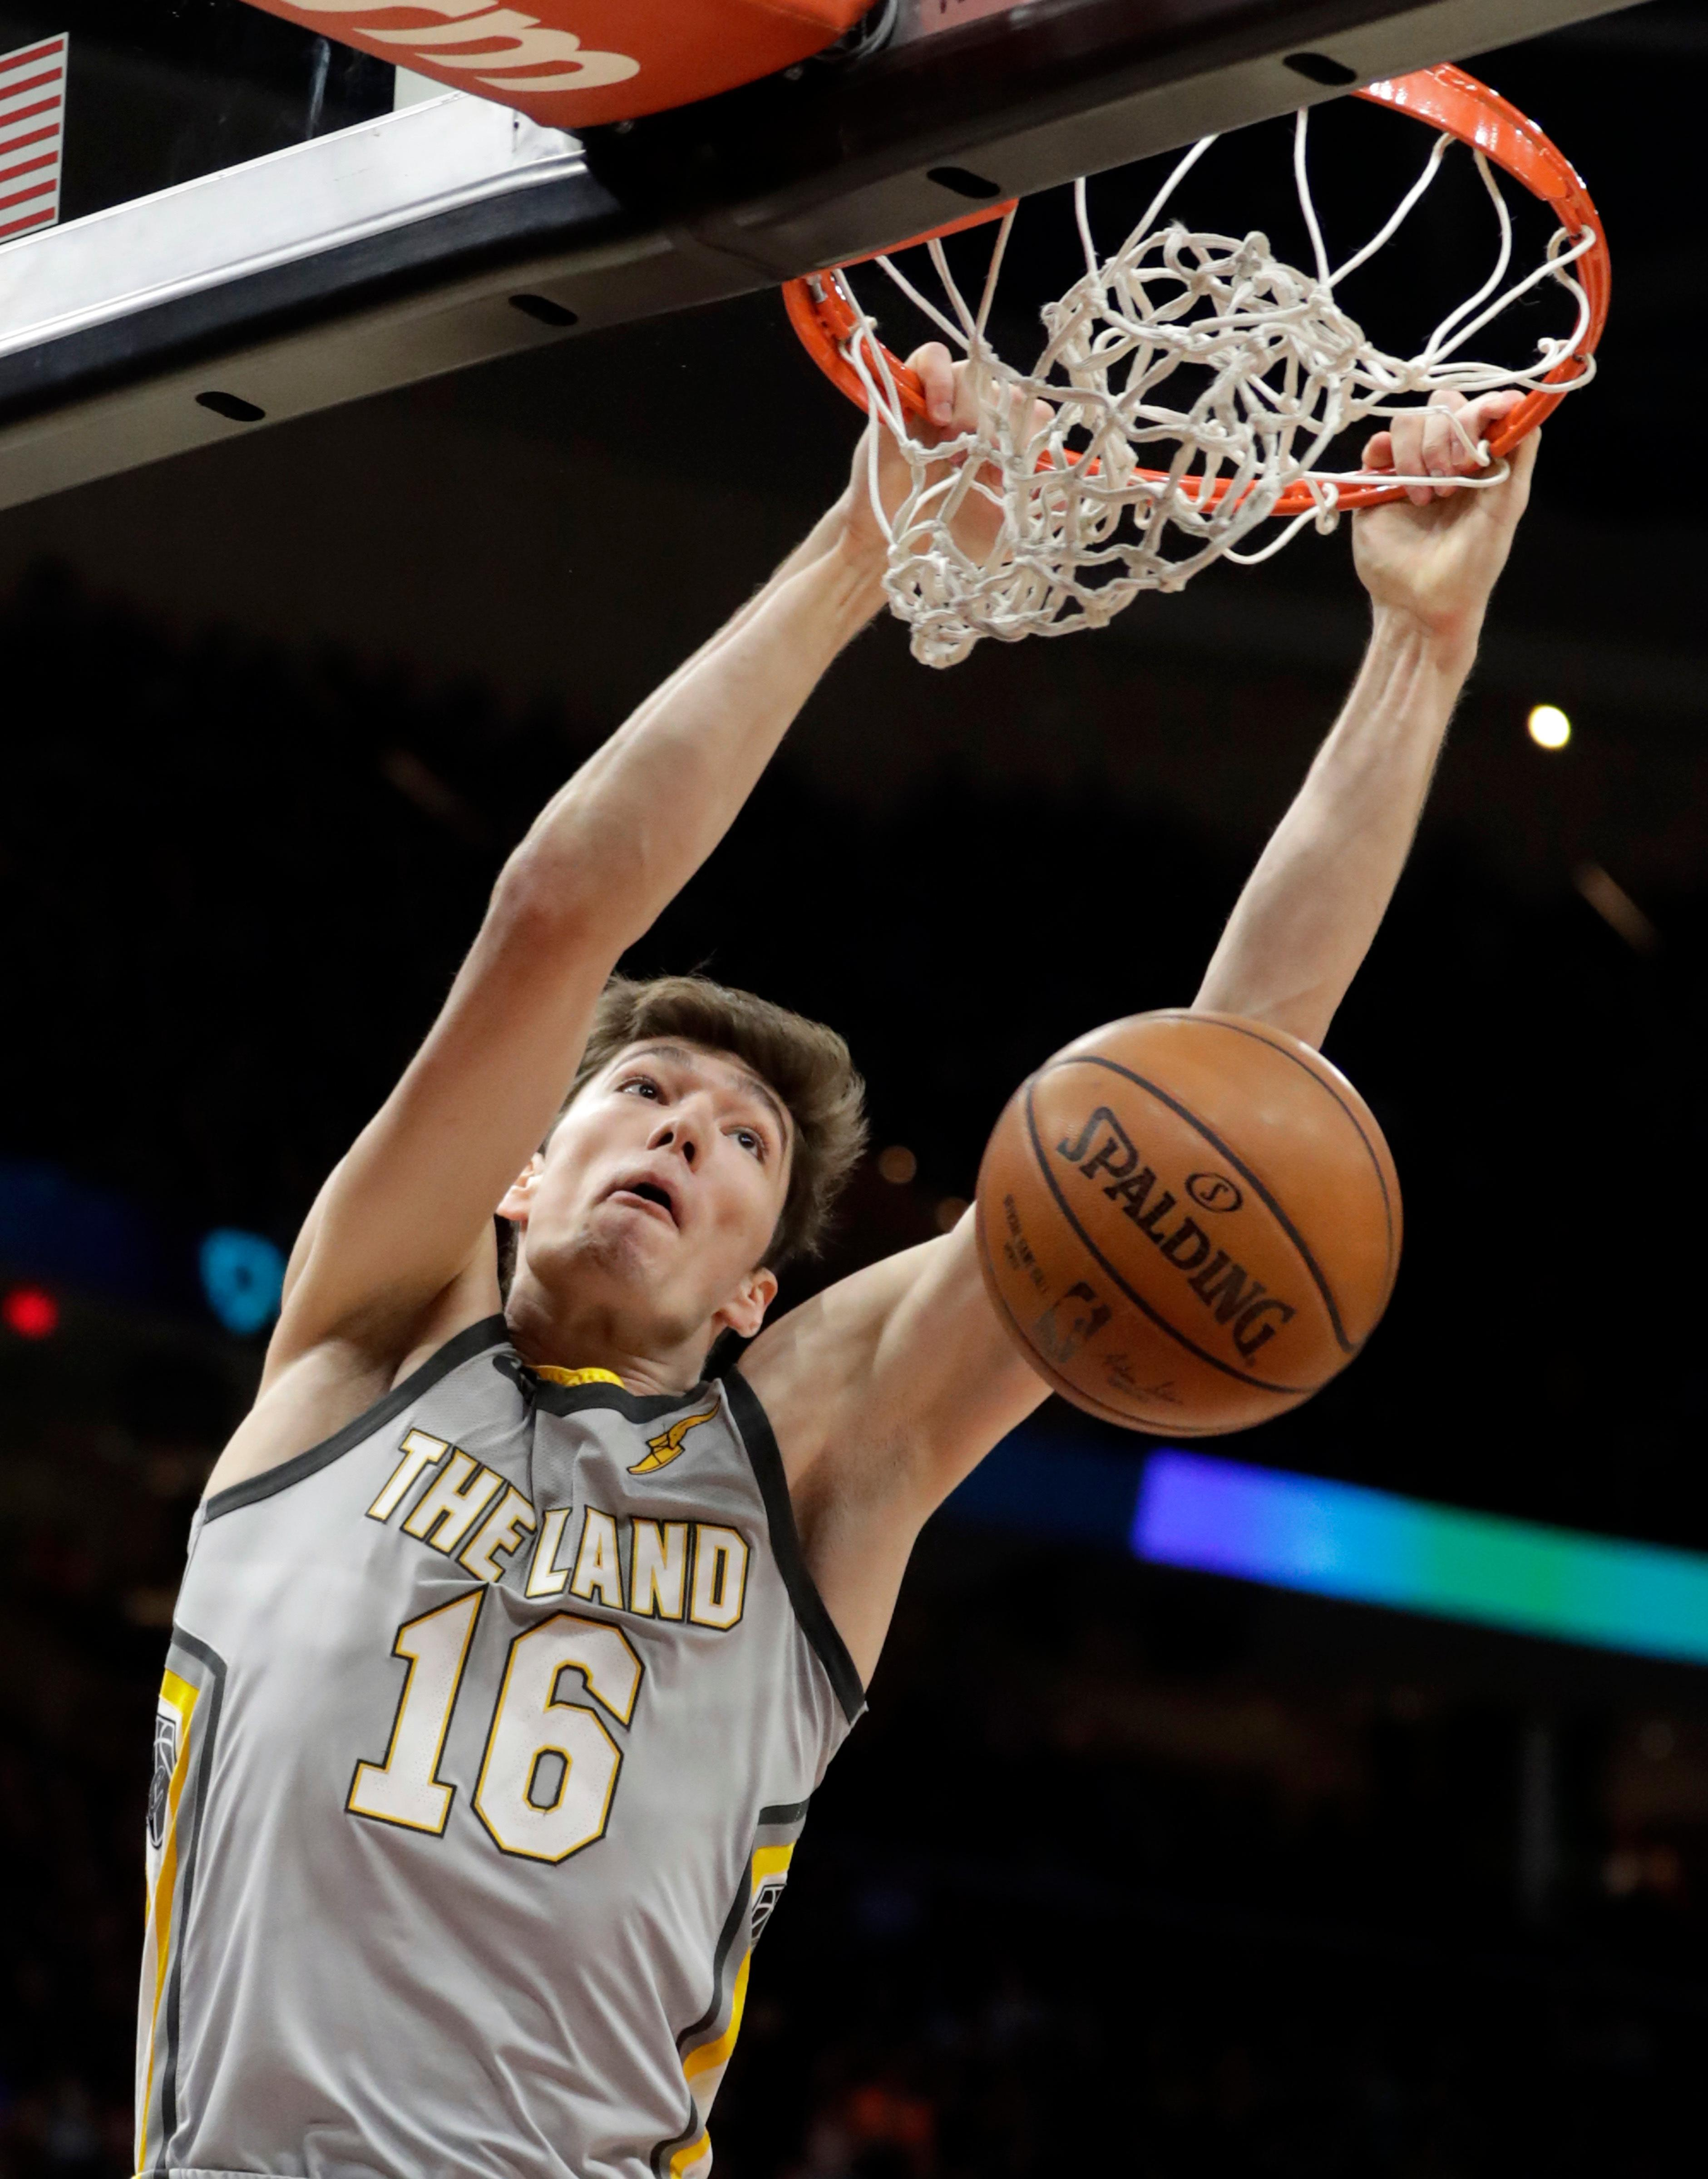 Cleveland Cavaliers' Cedi Osman, from Turkey, dunks the ball against the Denver Nuggets in the first half of an NBA basketball game, Saturday, March 3, 2018, in Cleveland. (AP Photo/Tony Dejak)